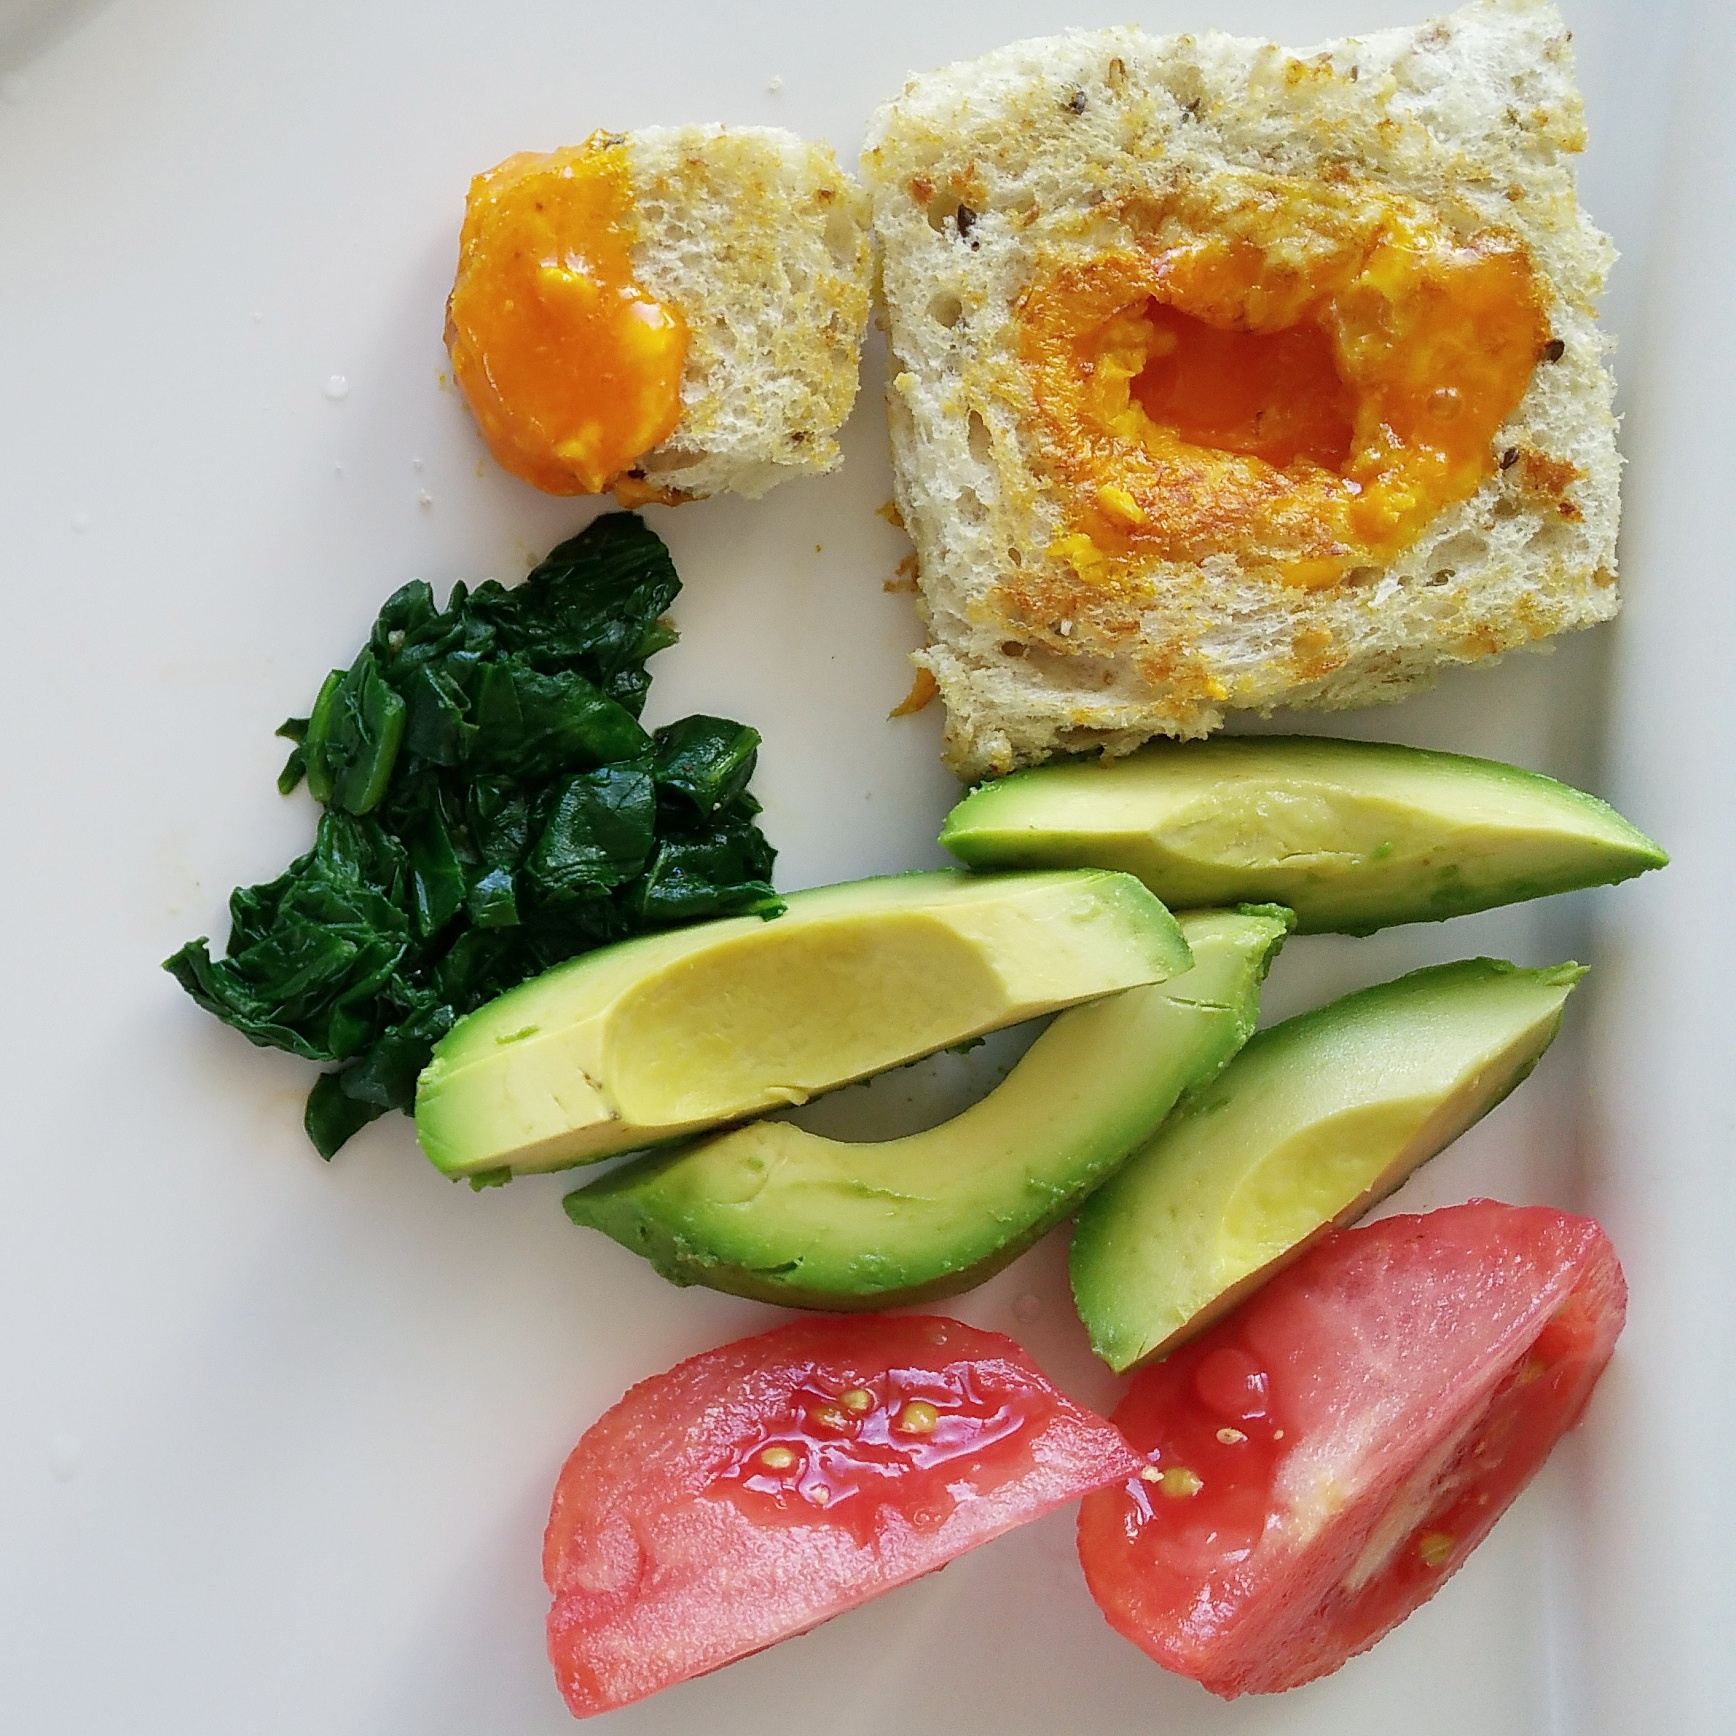 egg yolk in the poke, chopped cooked spinach, avocado, tomato